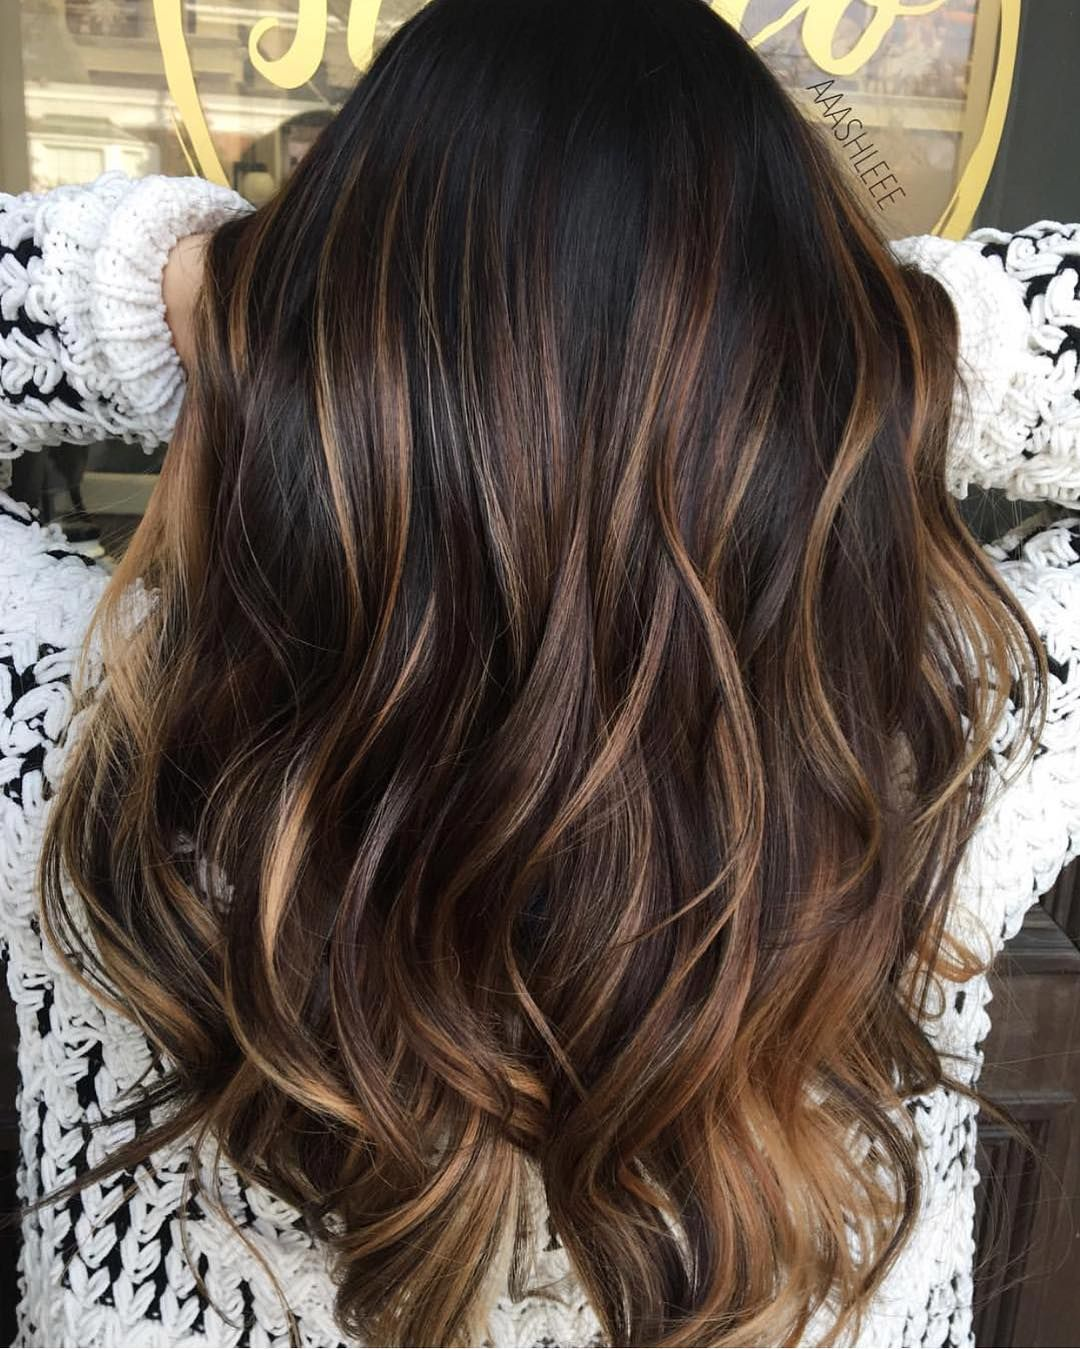 21 balayage dark brown hair color ideas for changing up ...